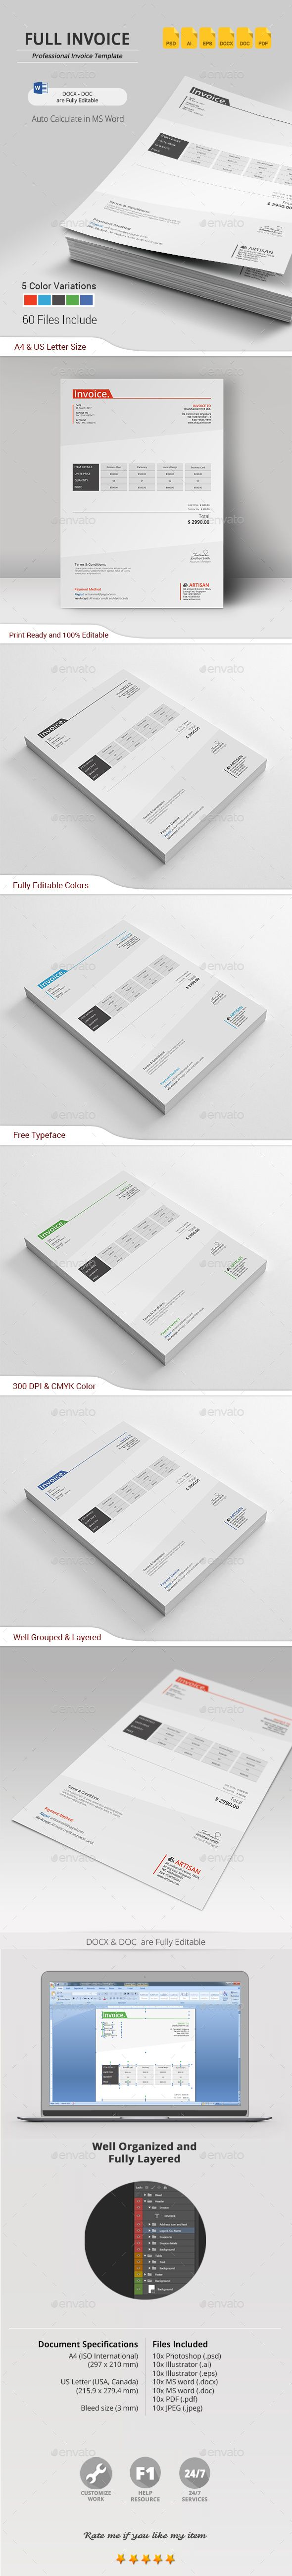 Invoice u2014 Photoshop PSD estimate stationery template